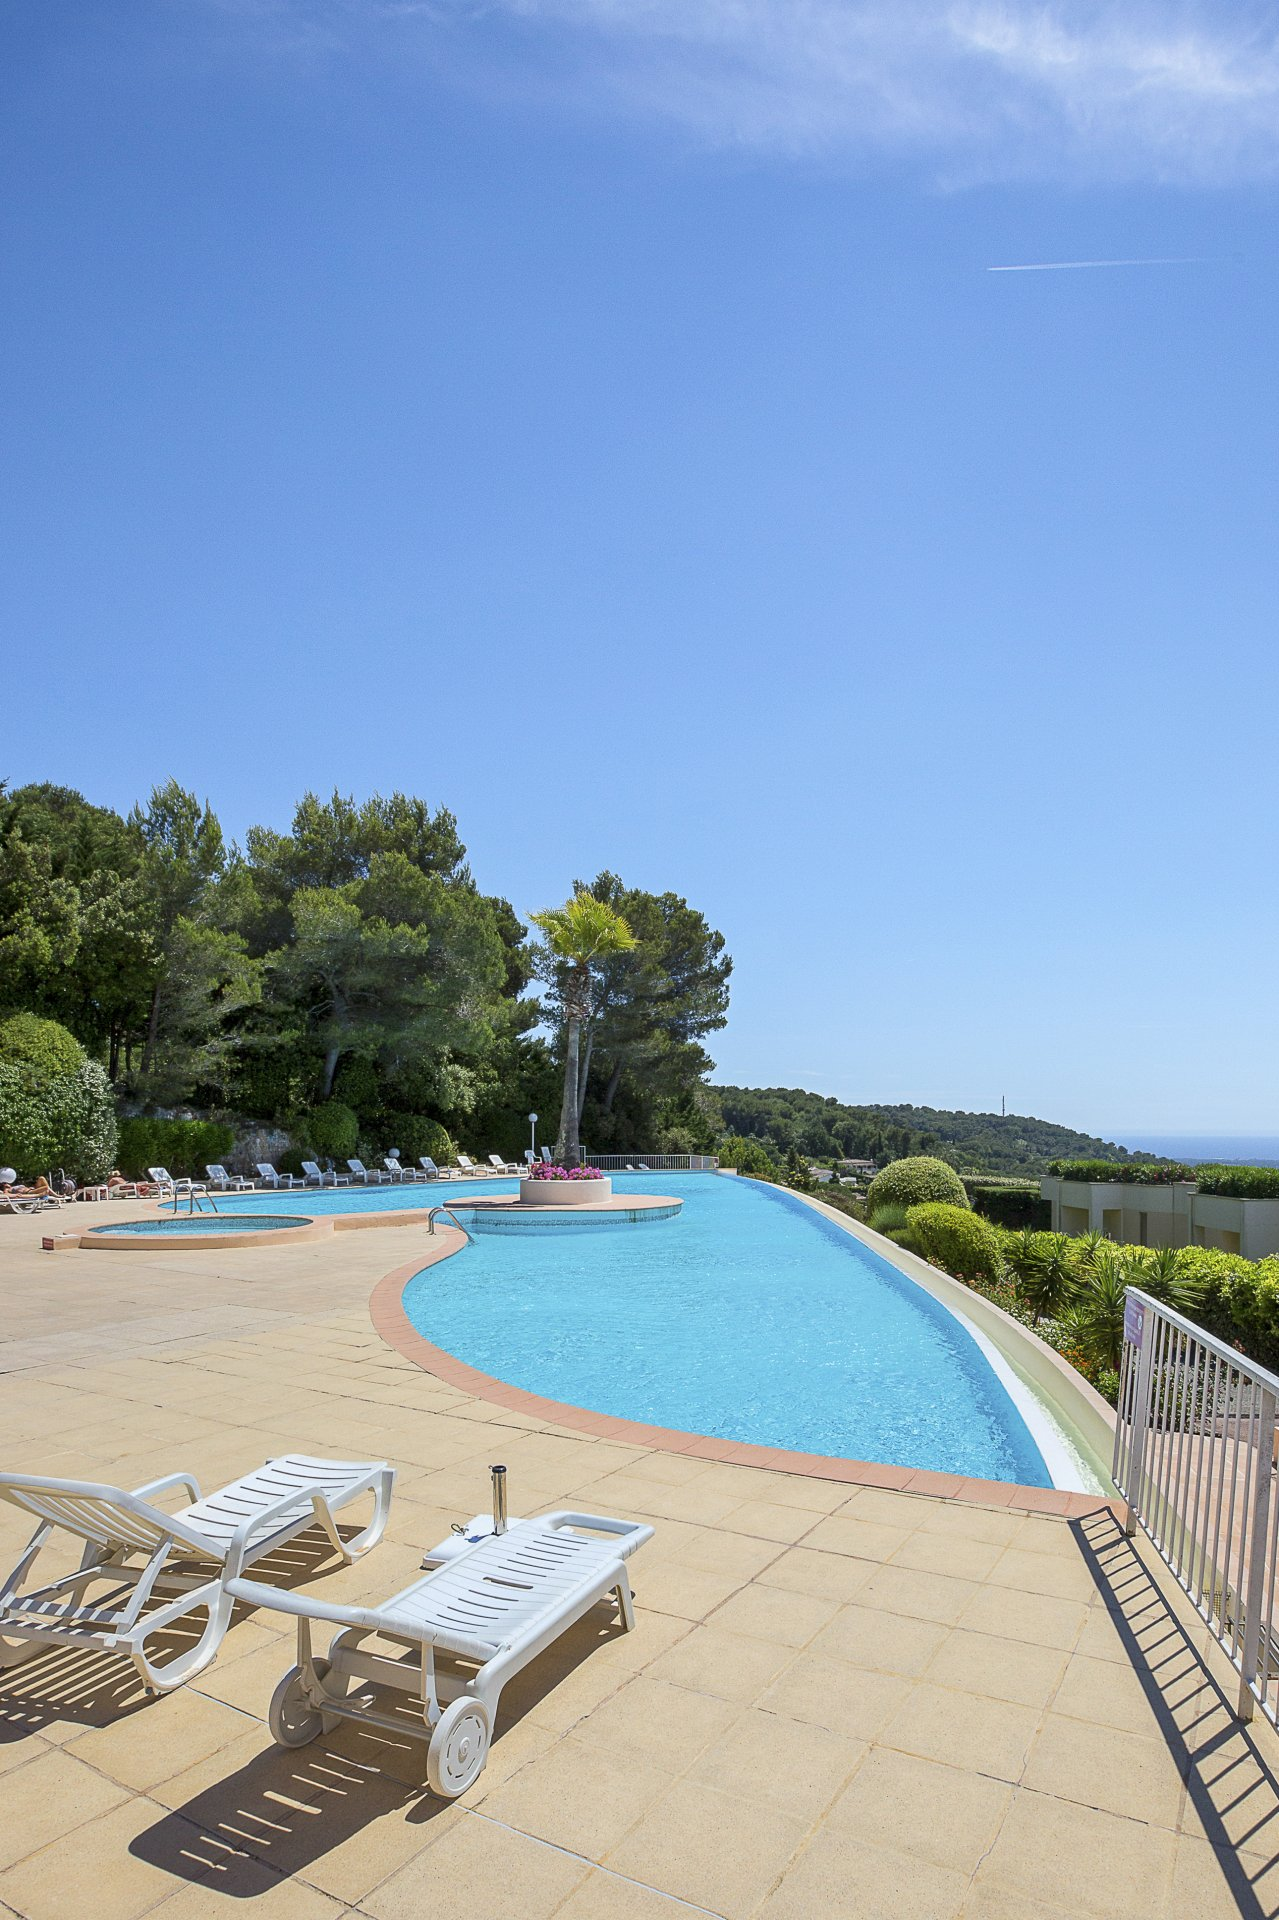 Super 2 bed apartment for sale with a beautiful terrace and panoramic views of the Mediterranean, the bay of Cannes and surrounding hillside